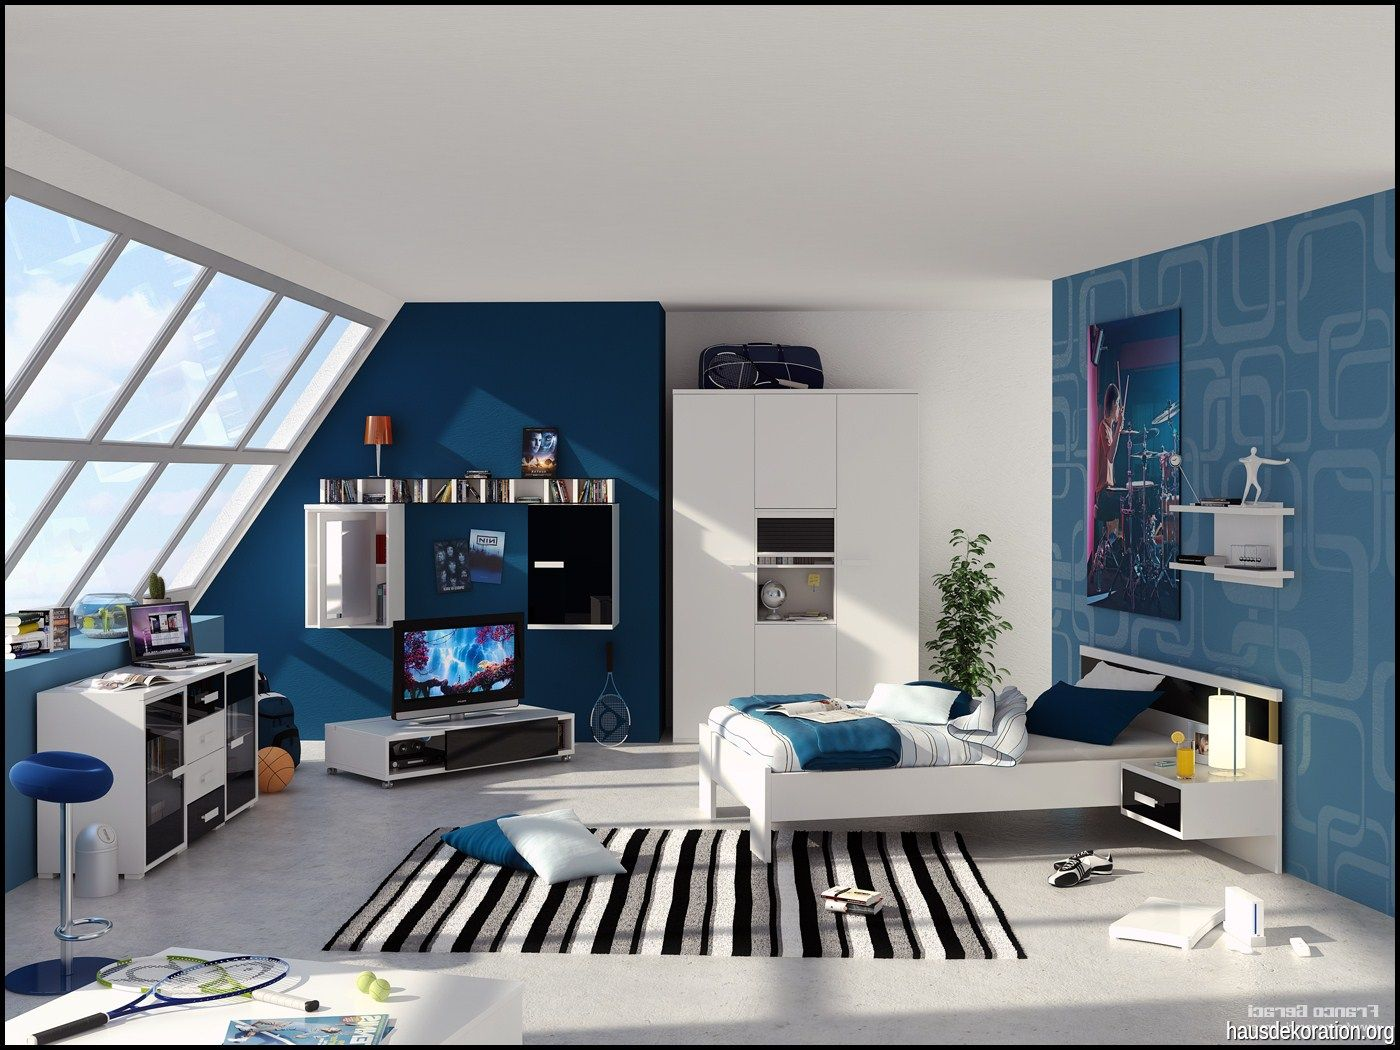 Pin auf Design - Teen Boy Room Decor Ideas